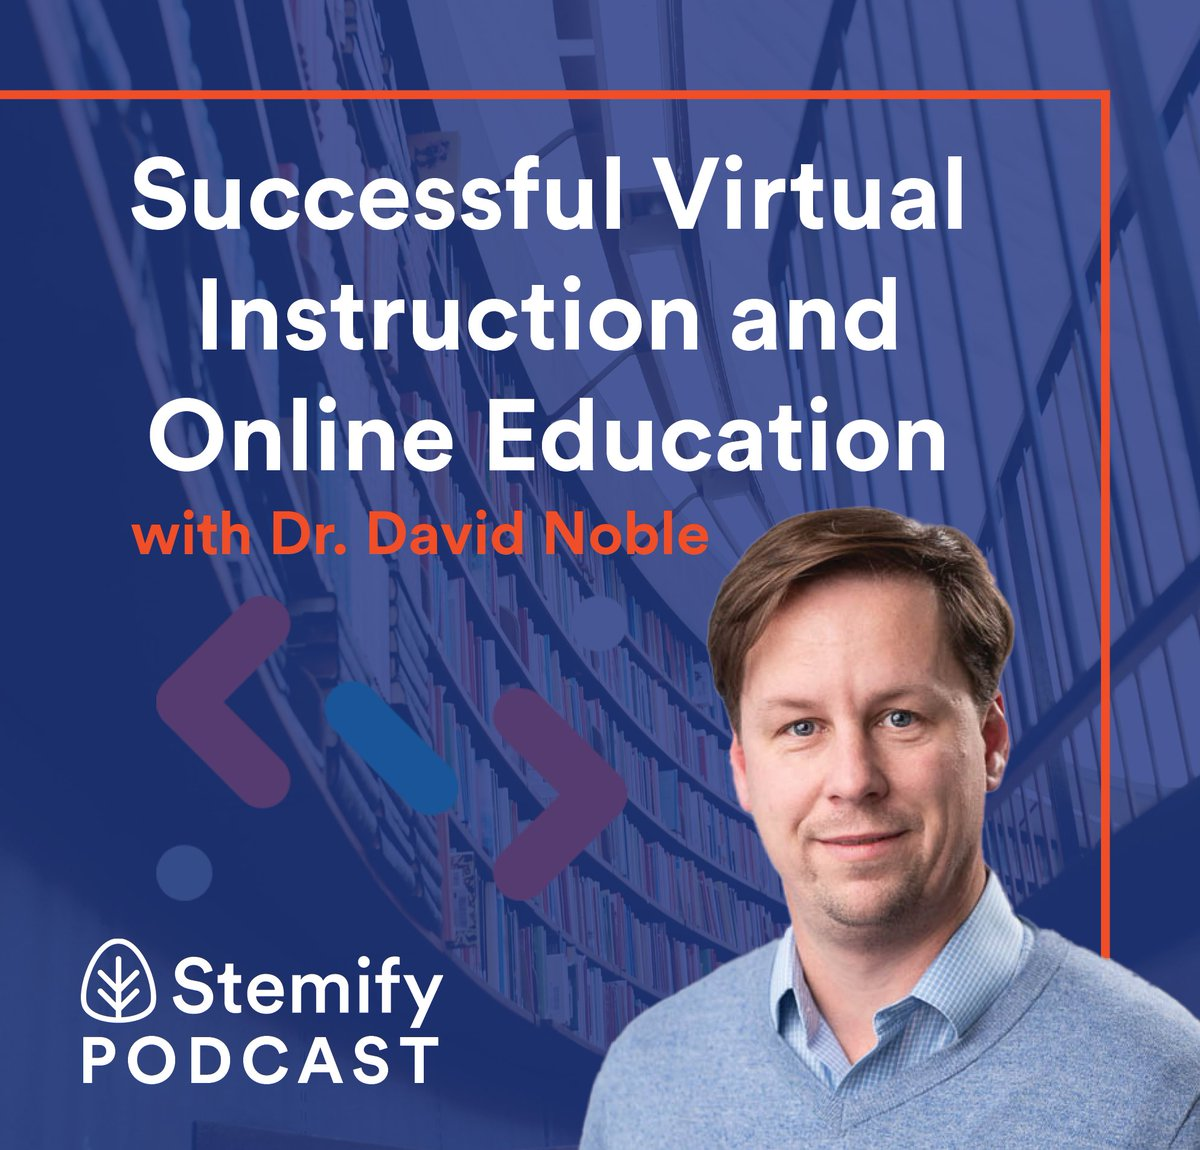 Insightful words from Dr. David Noble in the latest episode of the Stemify Podcast. David and Amit discuss the changing landscape of education and the key factors impacting online learning. #stemeducation #edtech #stemifypodcast https://stemify.ai/podcast/successful-virtual-instruction-and-online-education/?utm_source=twitter&utm_medium=social&utm_campaign=podcast2 …pic.twitter.com/E57C1UHGWa